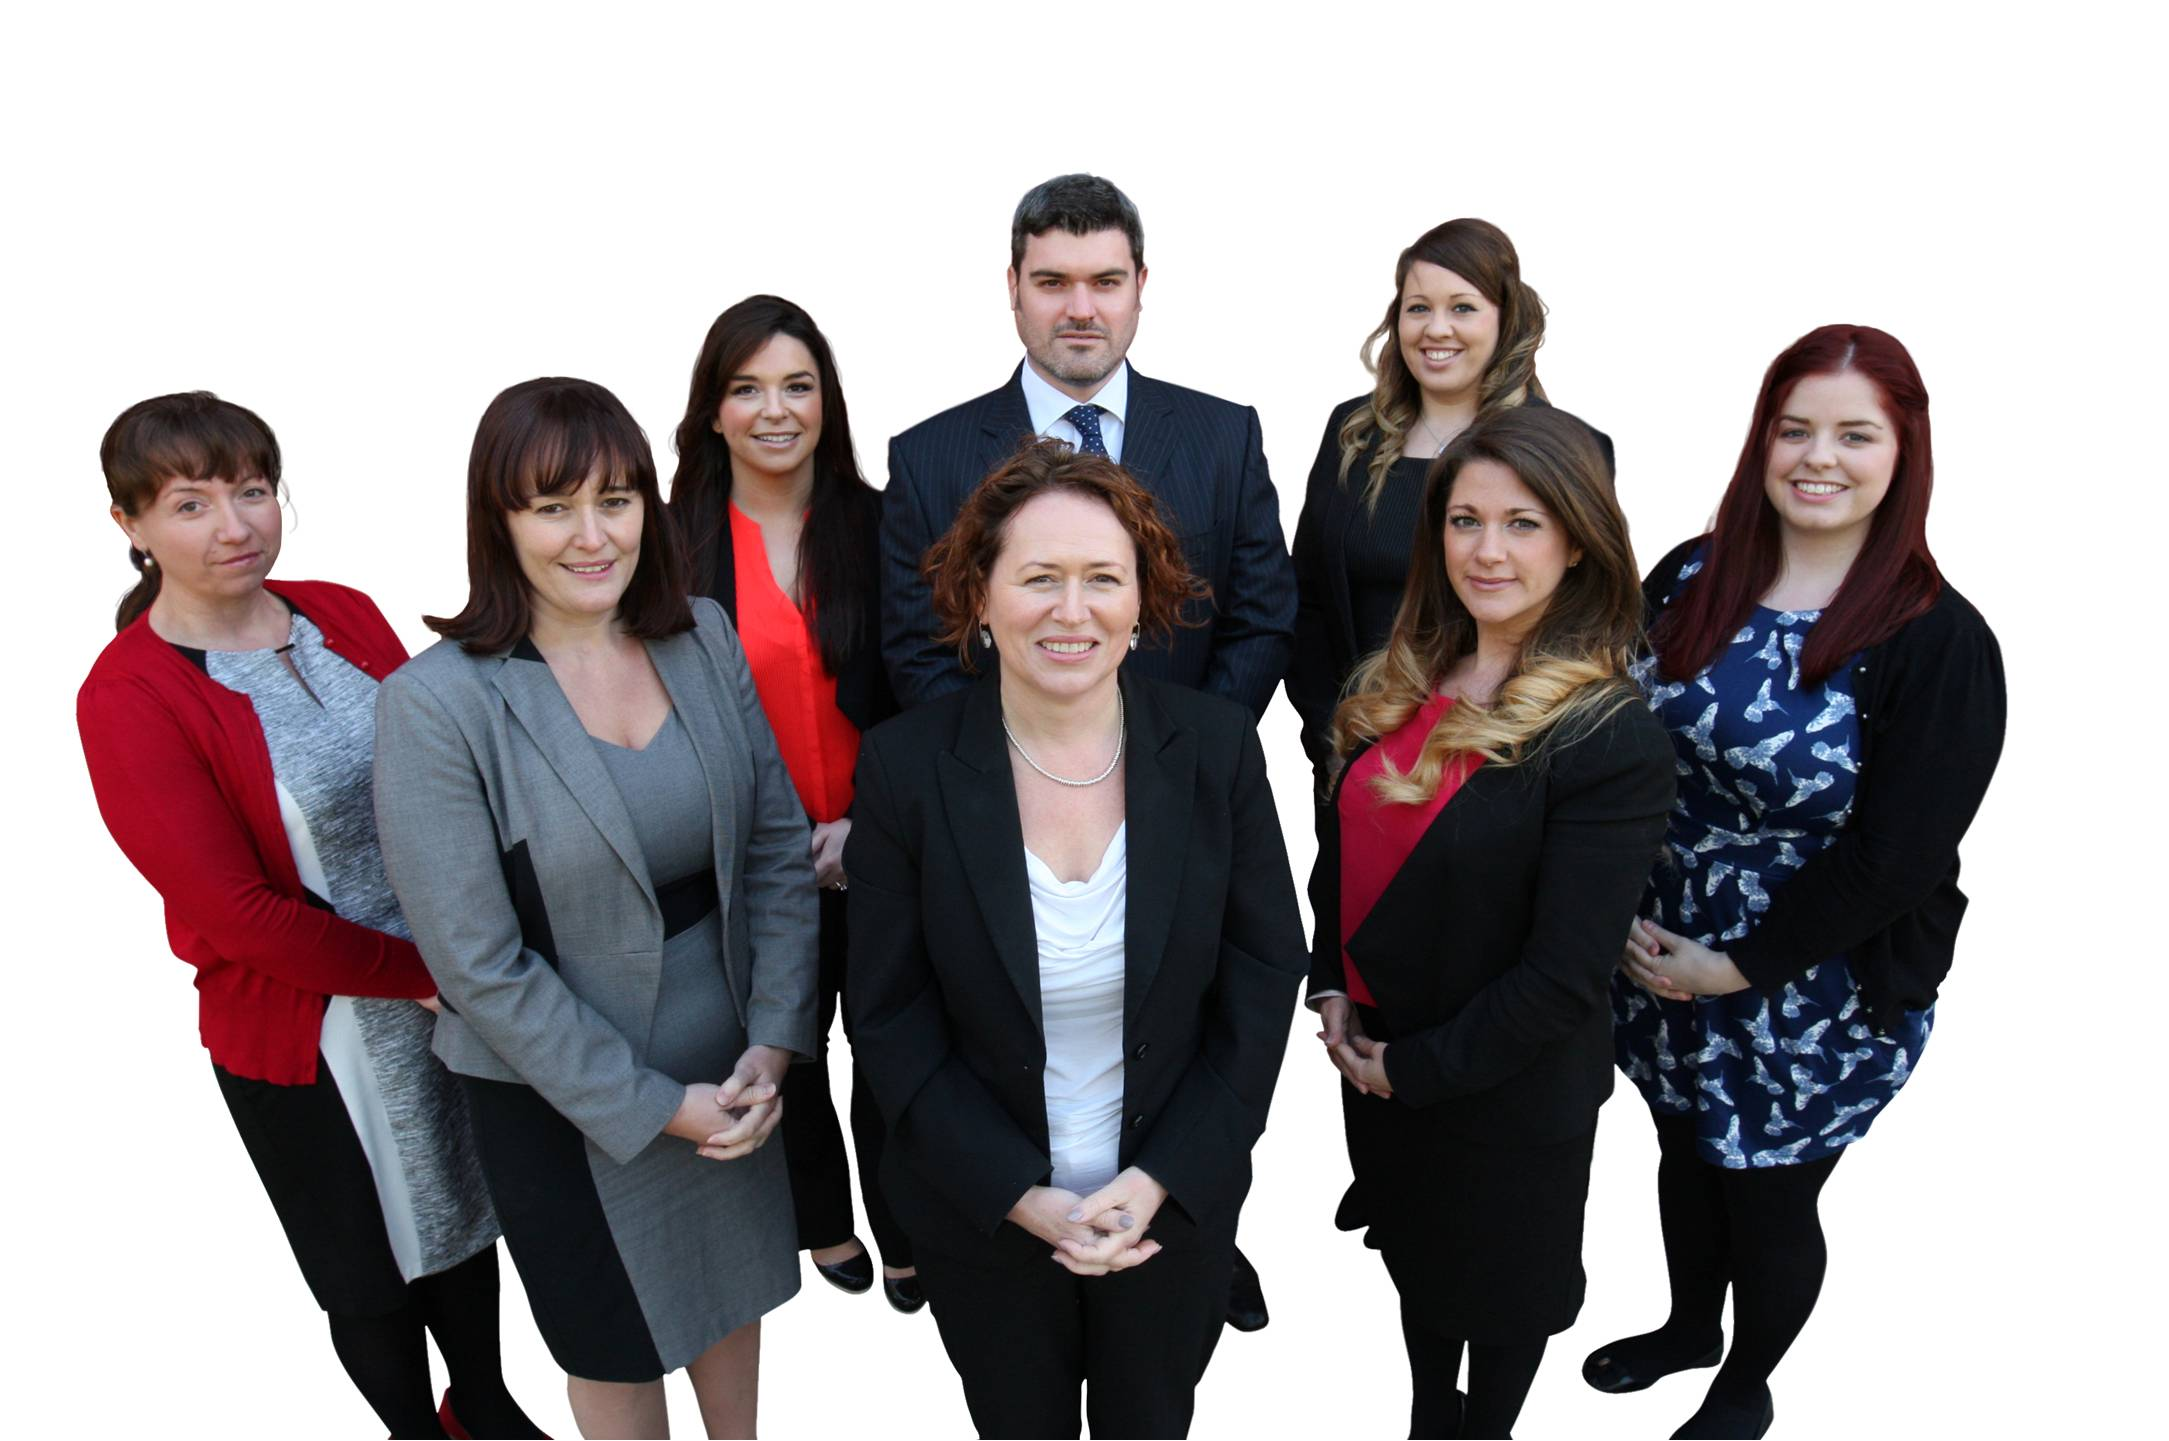 Our IVF expert team. We deal with medical negligence claims arising from IVF.